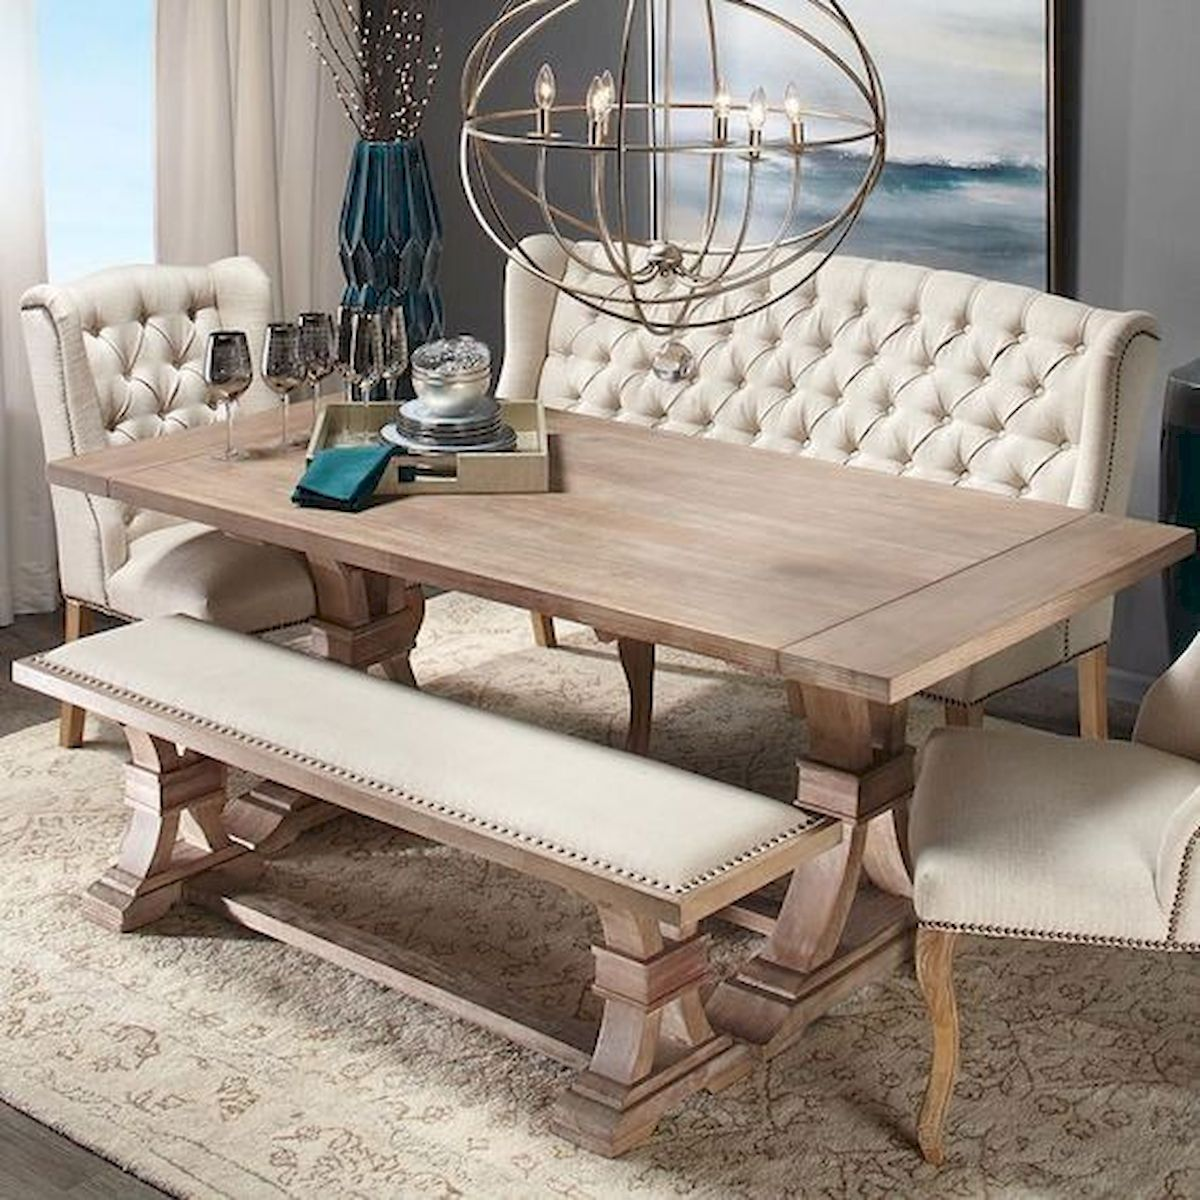 50 Nice DIY Furniture Projects for Dining Rooms Tables Design Ideas (41)